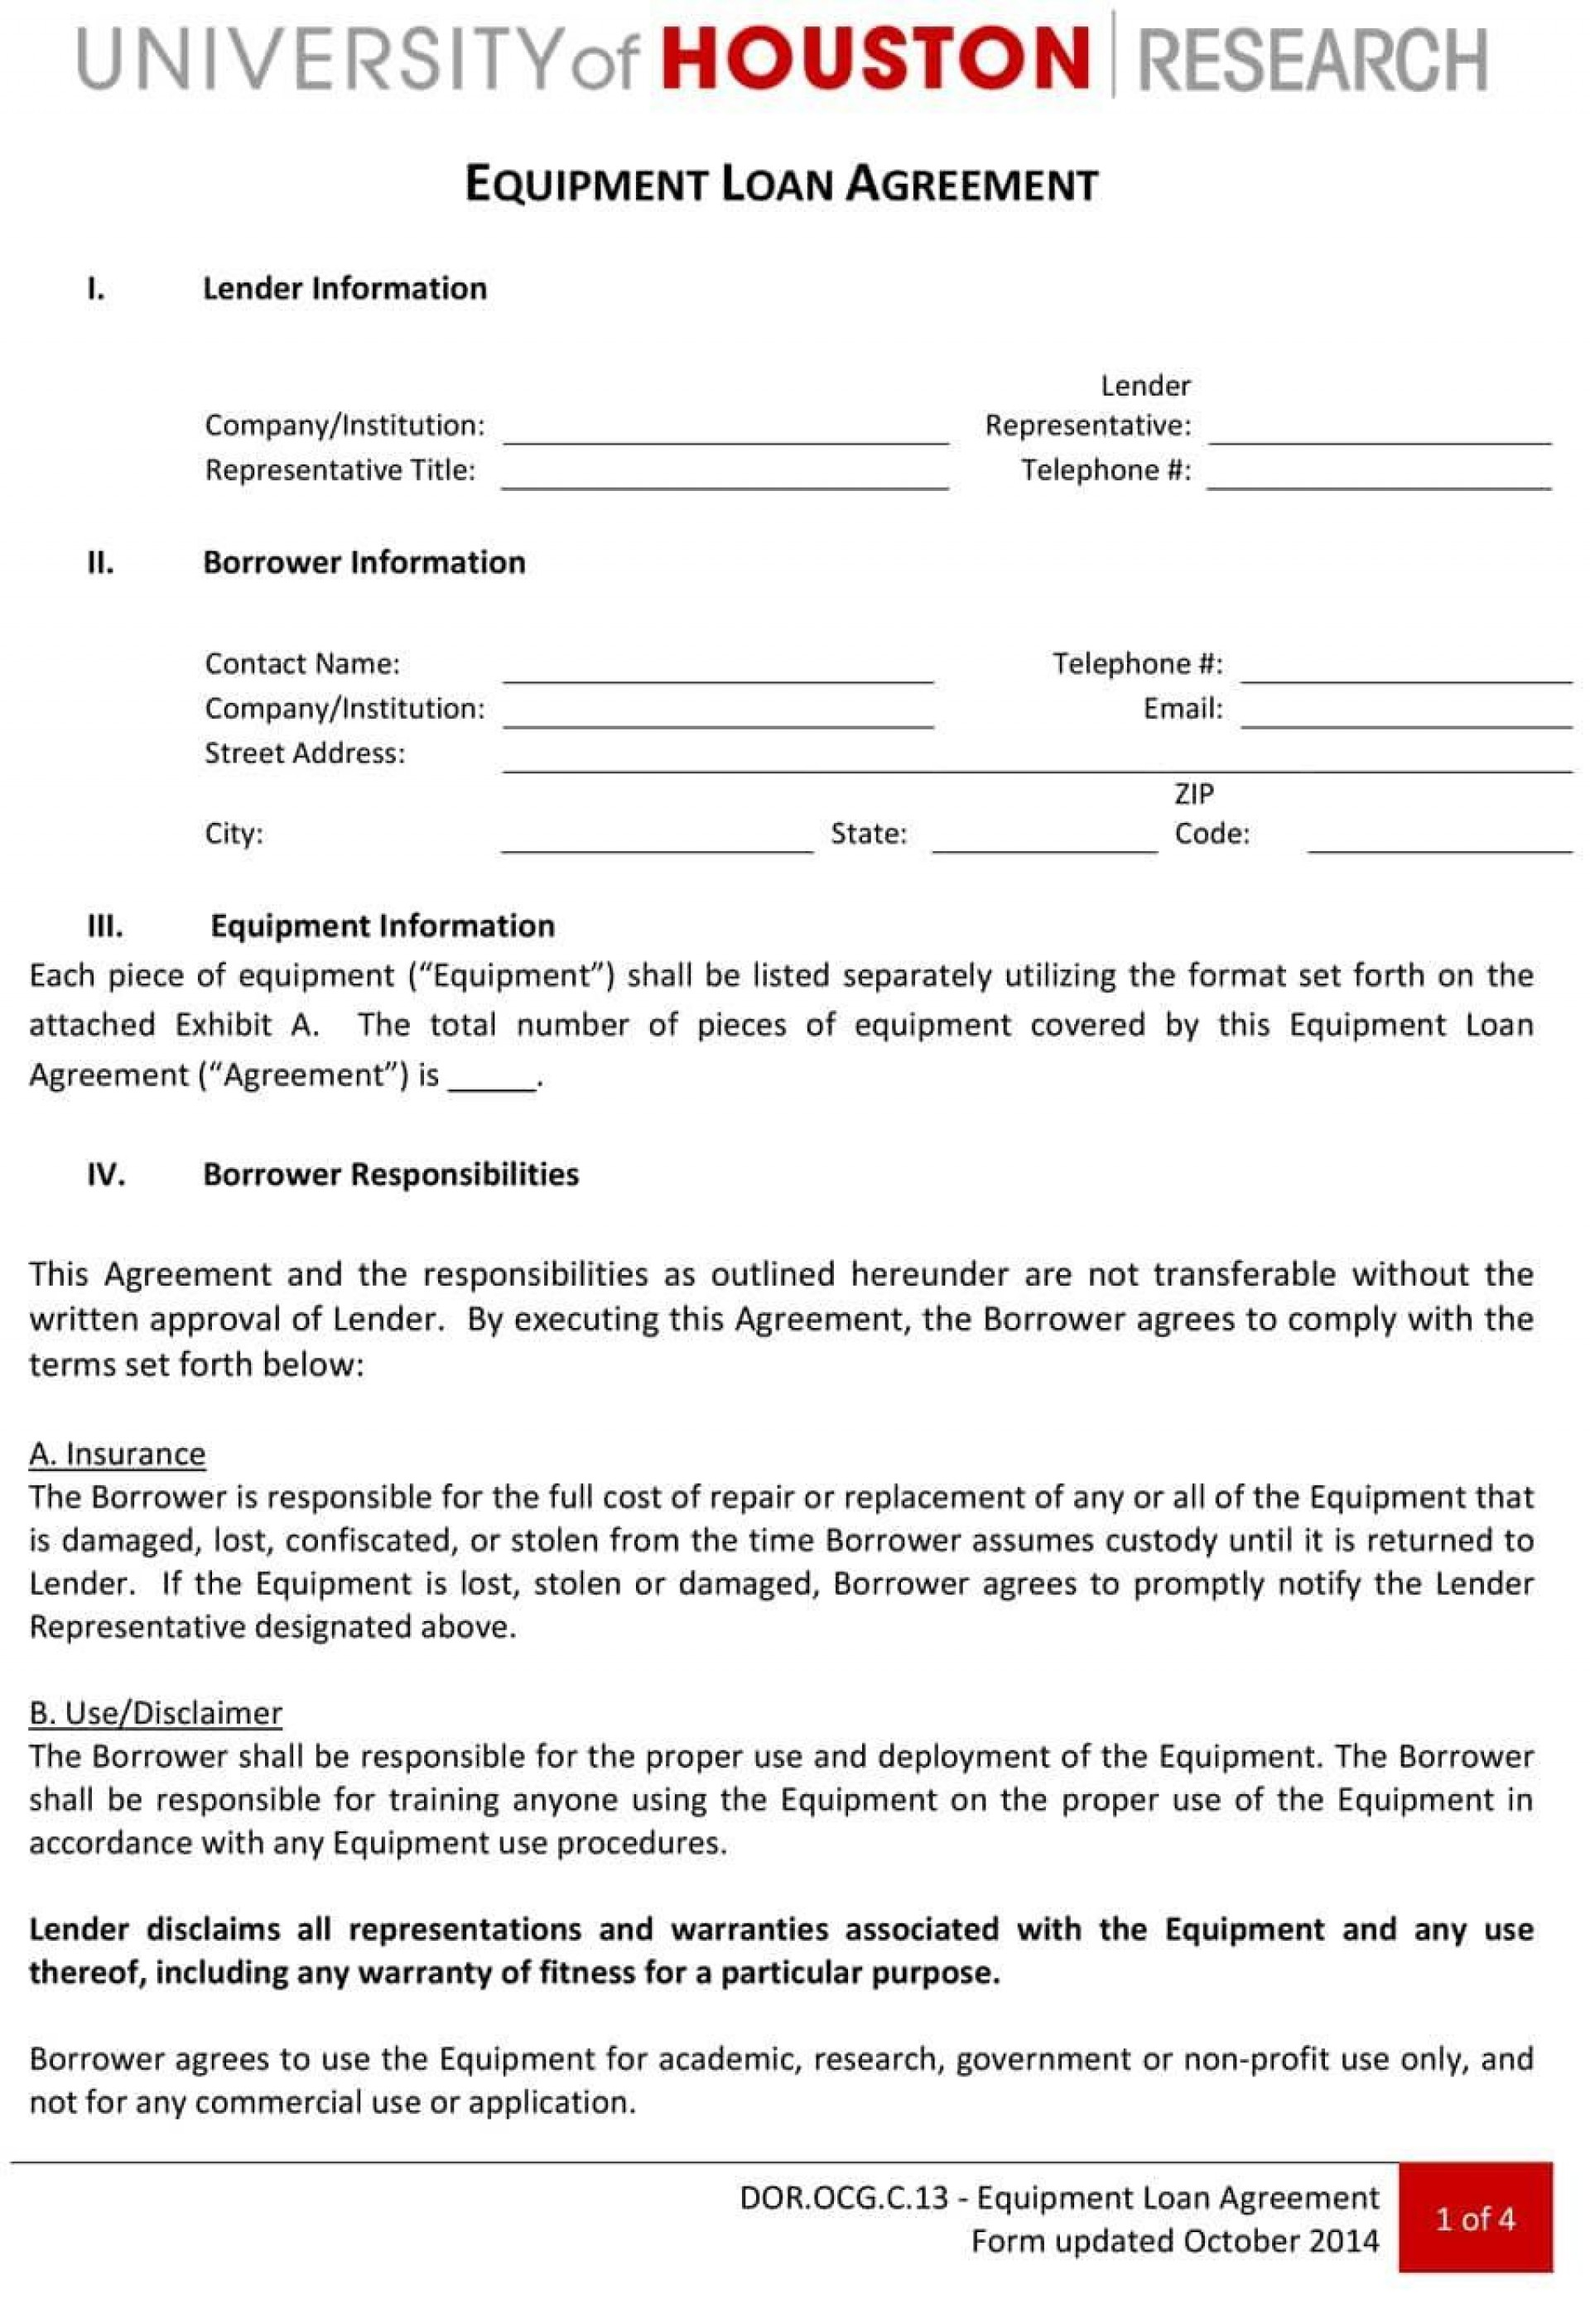 000 Staggering Equipment Loan Agreement Template Highest Quality  Simple Uk Borrowing Free1920